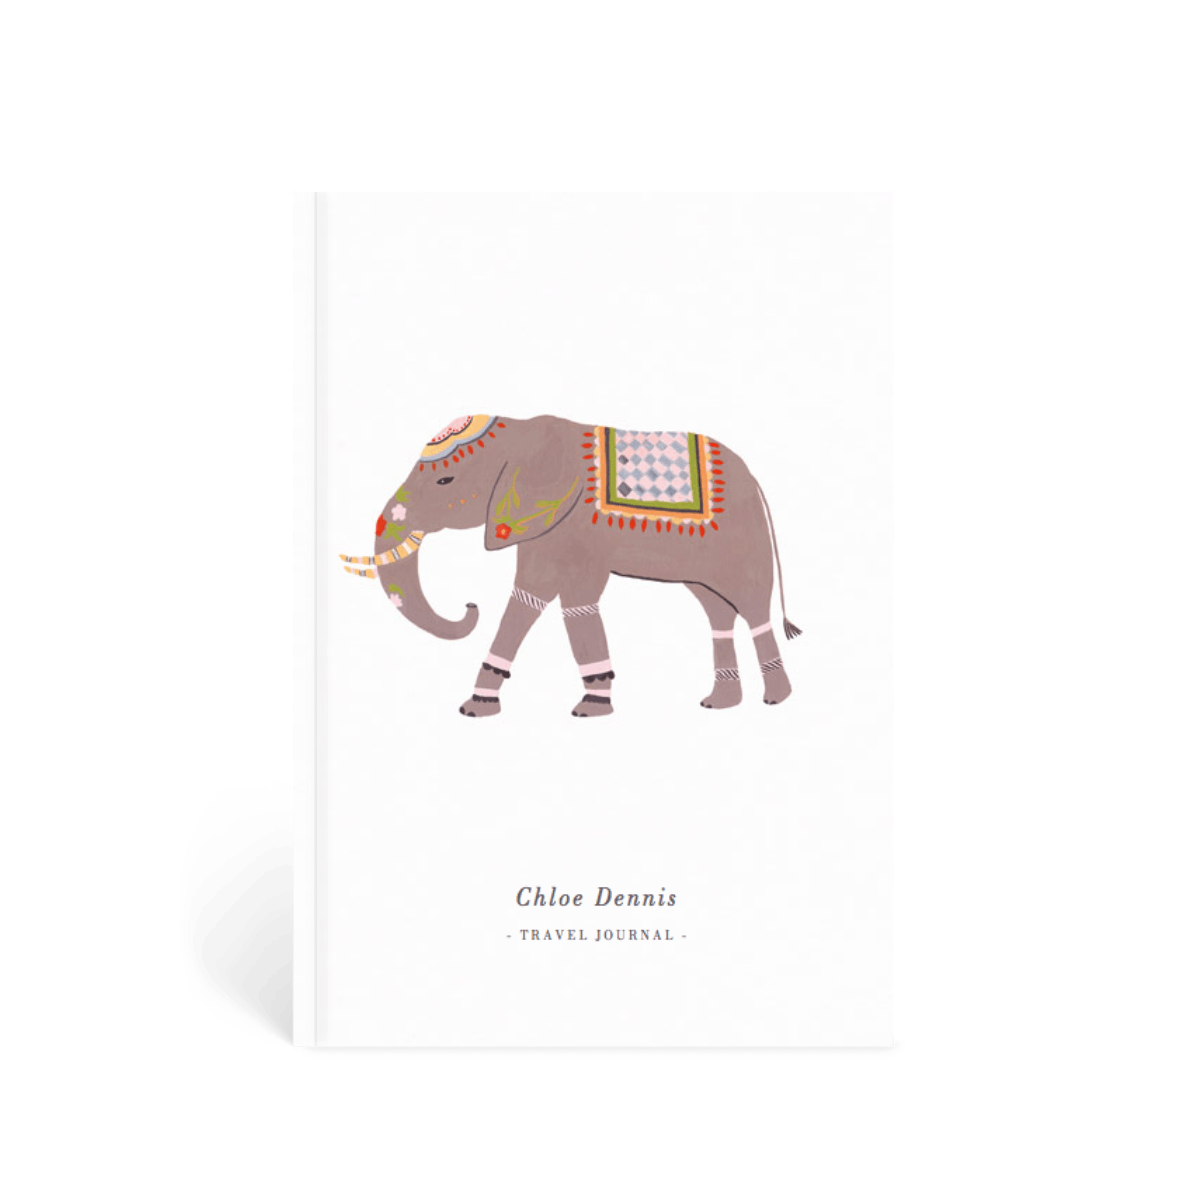 Https%3a%2f%2fwww.papier.com%2fproduct image%2f53820%2f25%2feastern elephant 12960 front 1542113279.png?ixlib=rb 1.1